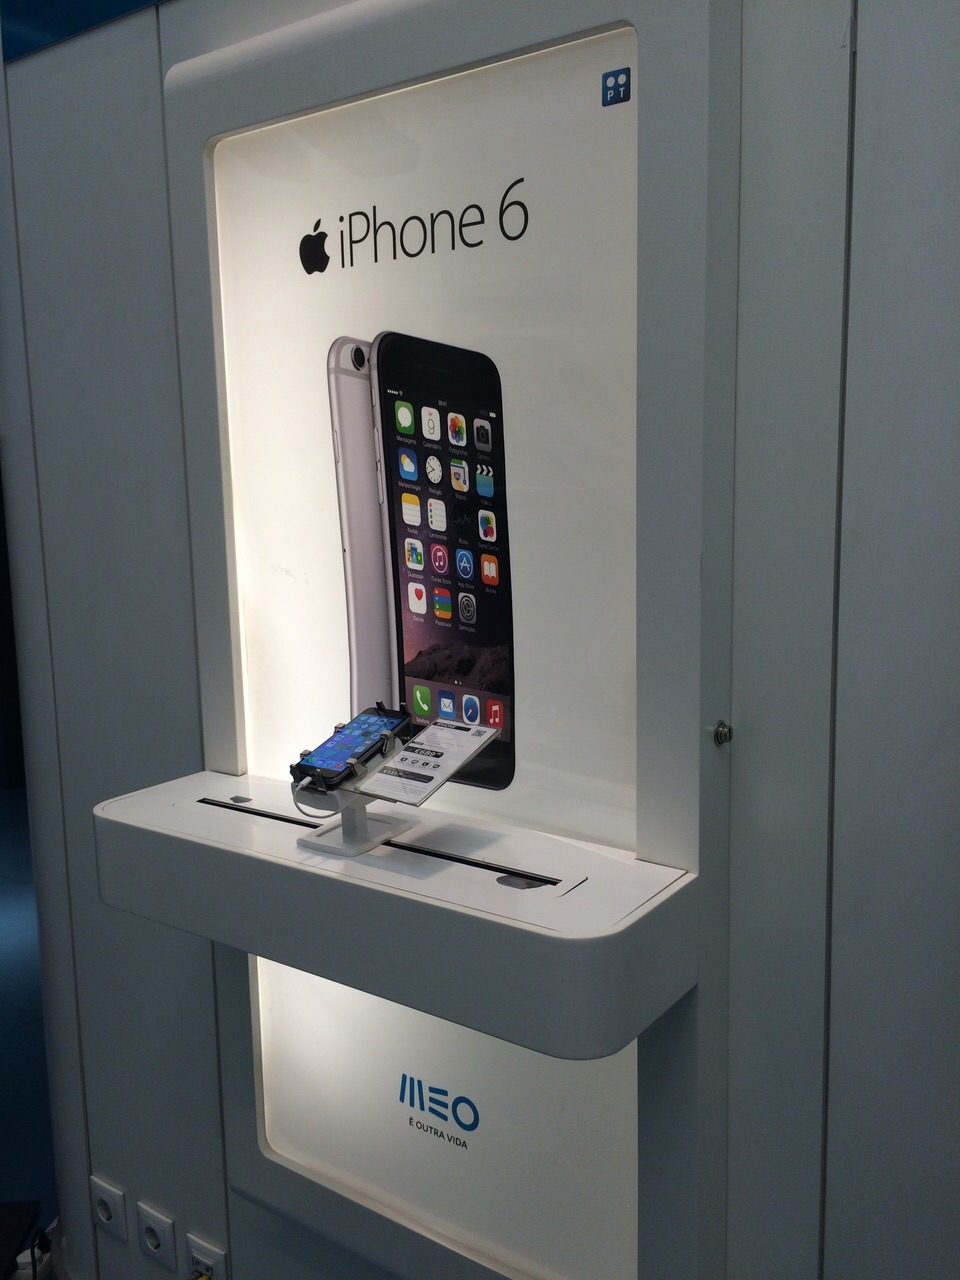 gripzo-iphone-6-secured-by.com-wall-display.jpg